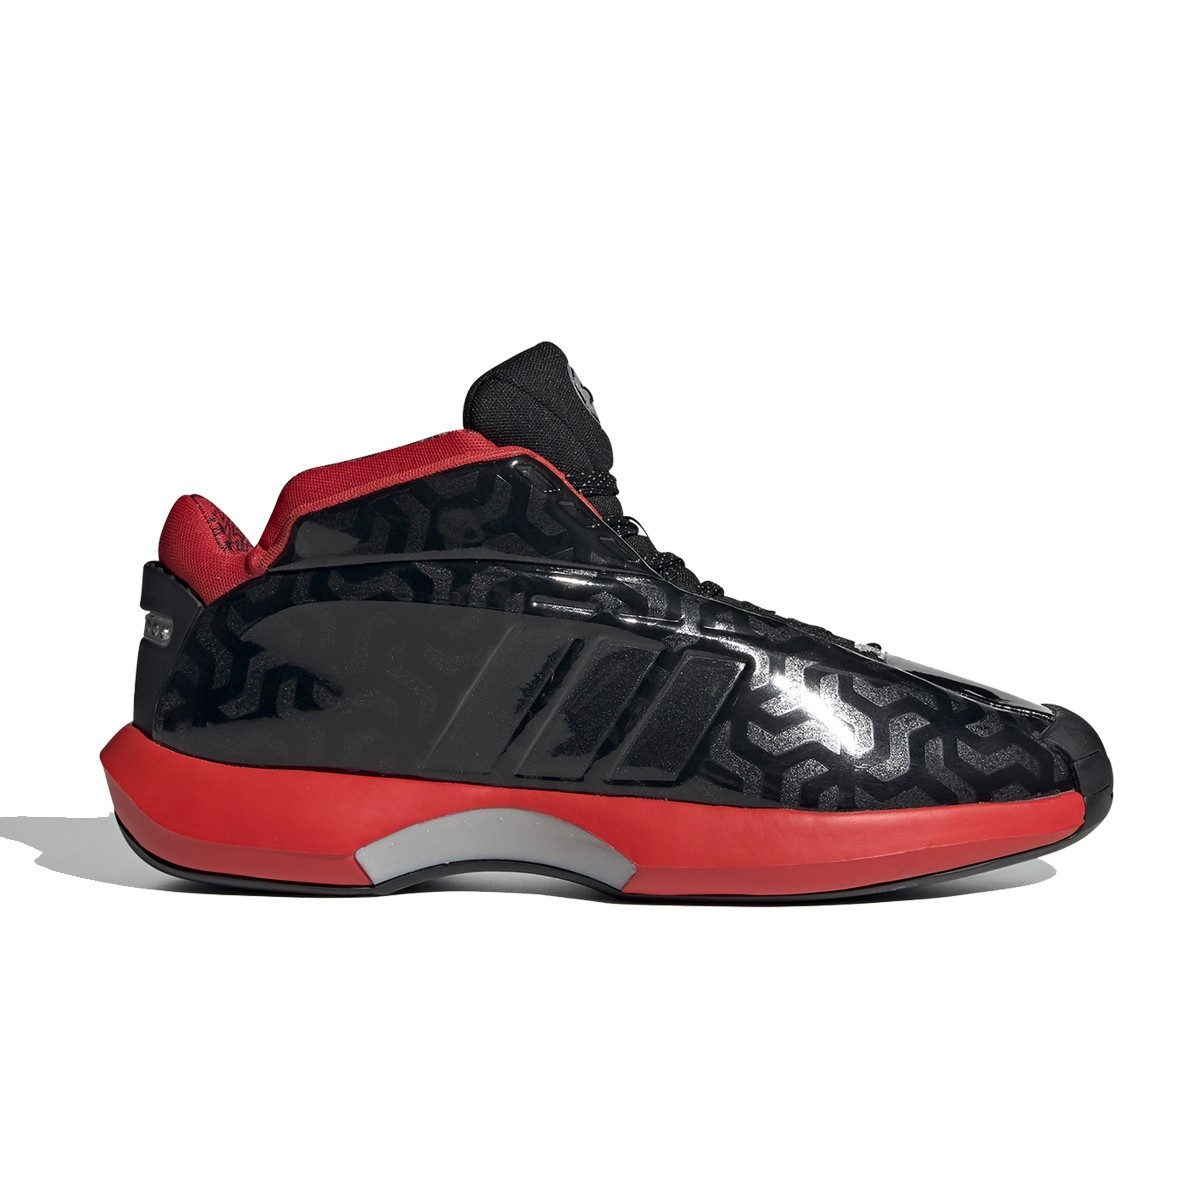 ADIDAS Crazy 1 Star Wars 'Darth Vader'-EH2460